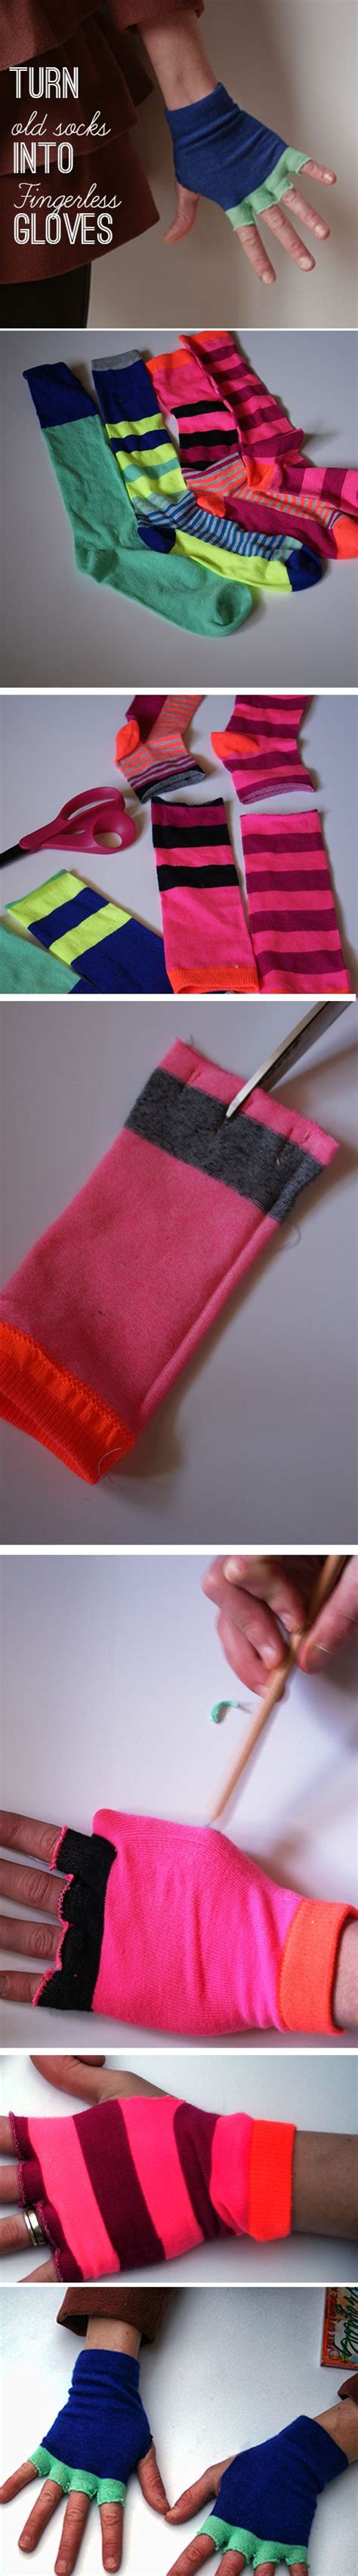 upcycle socks to fingerless gloves in this easy diy